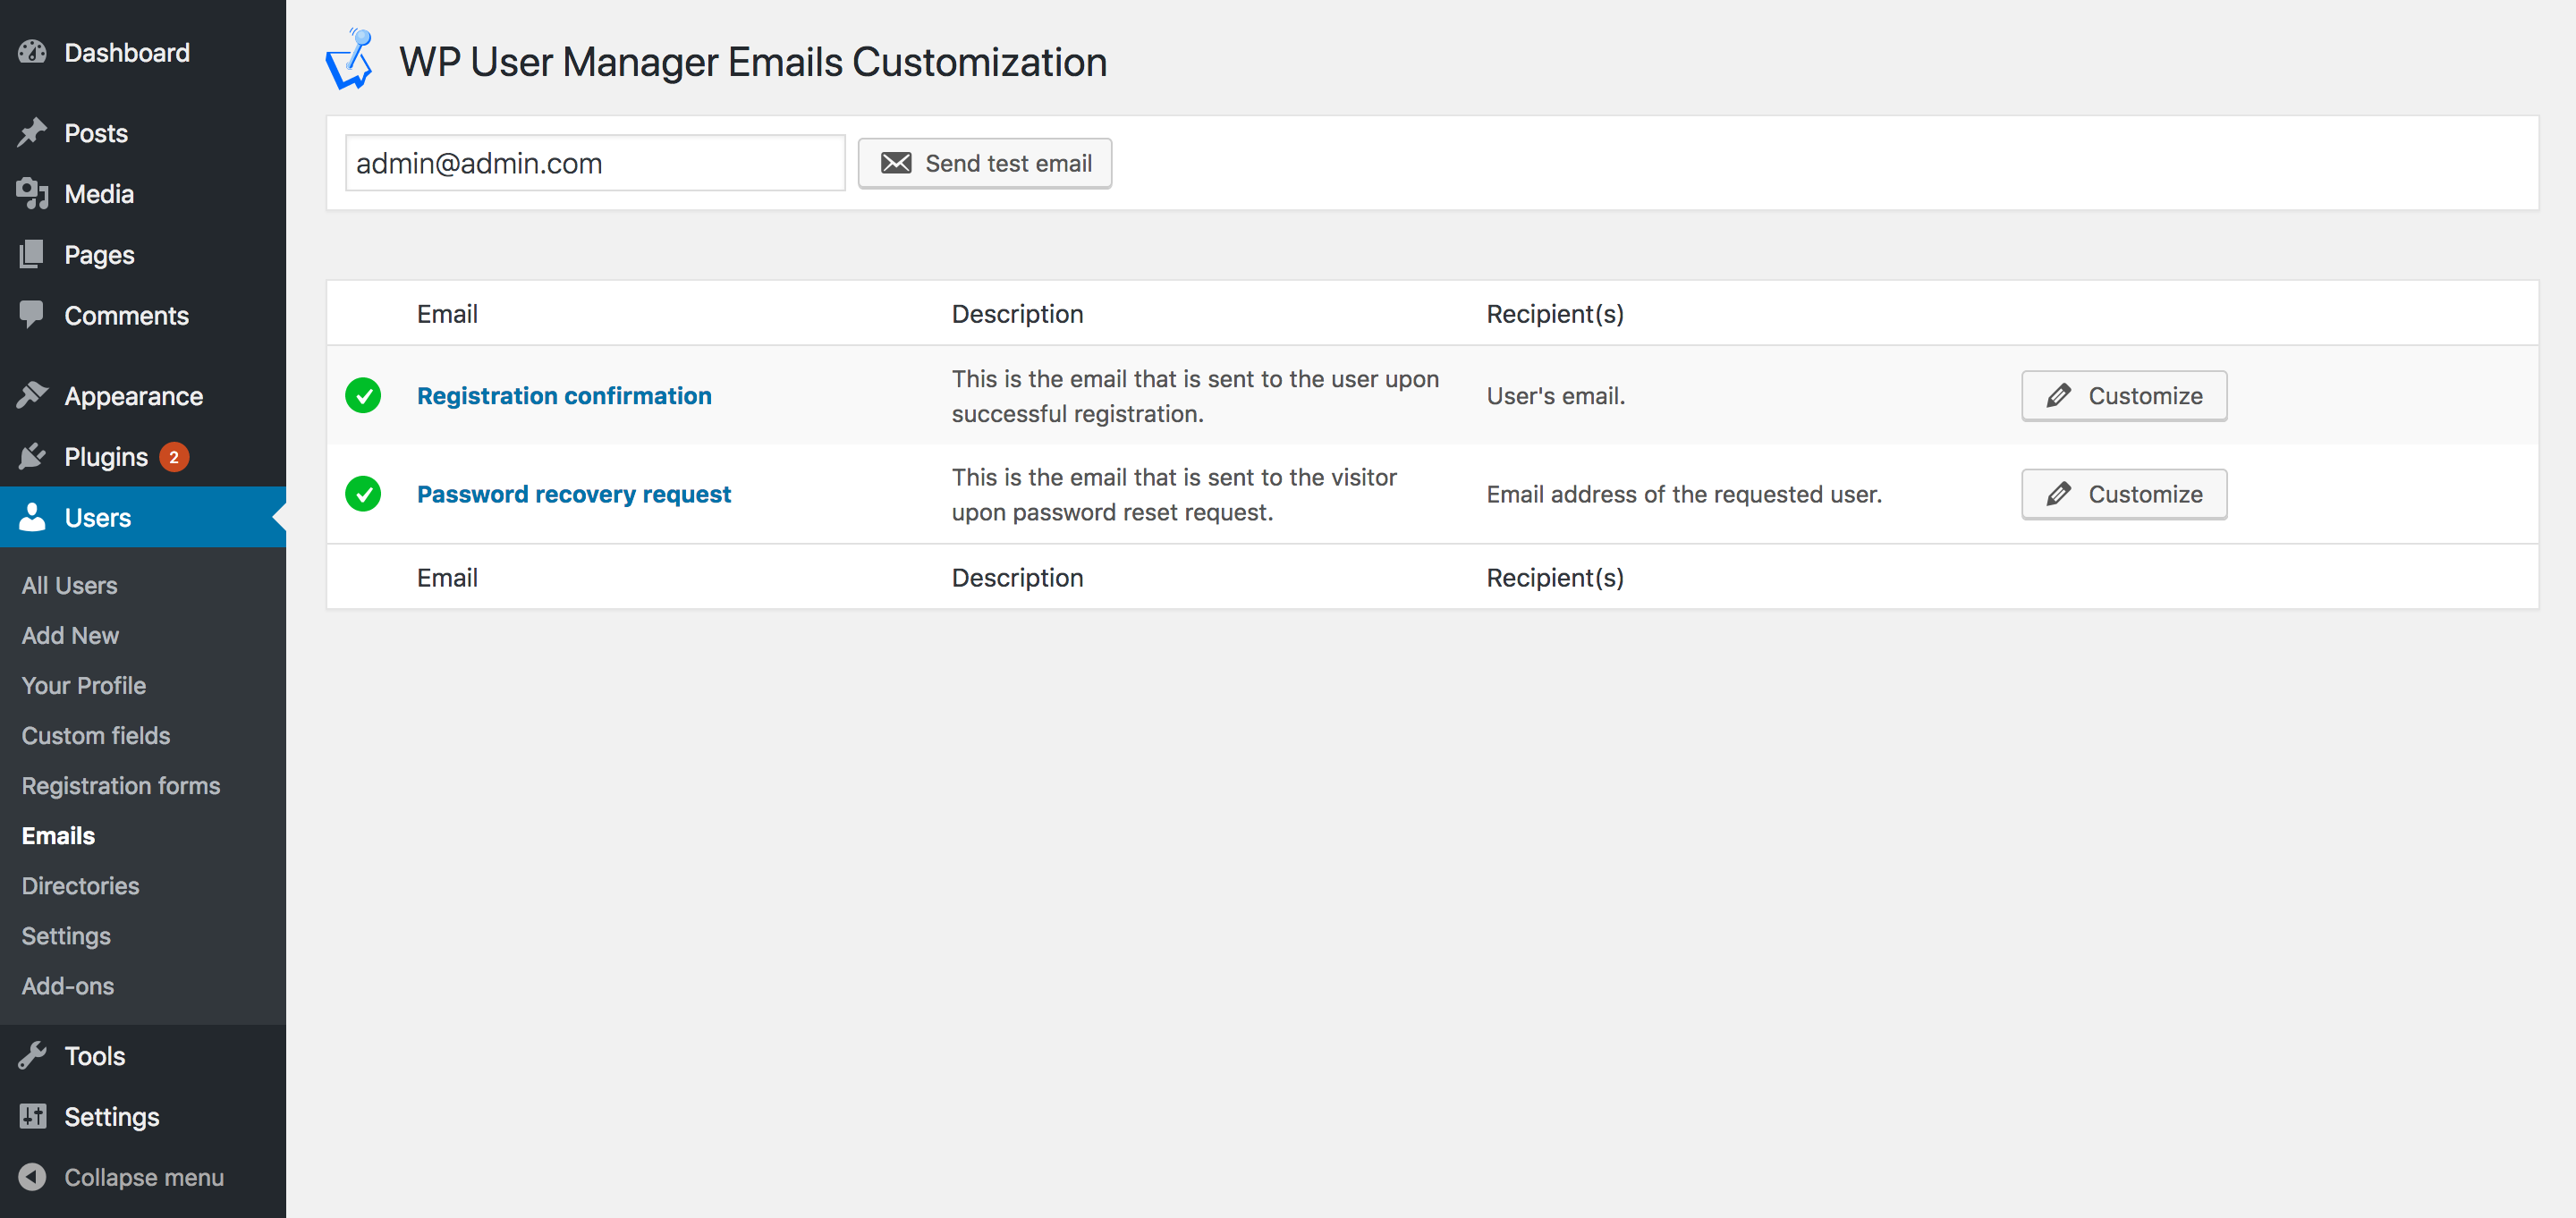 WP User Manager custom email settings